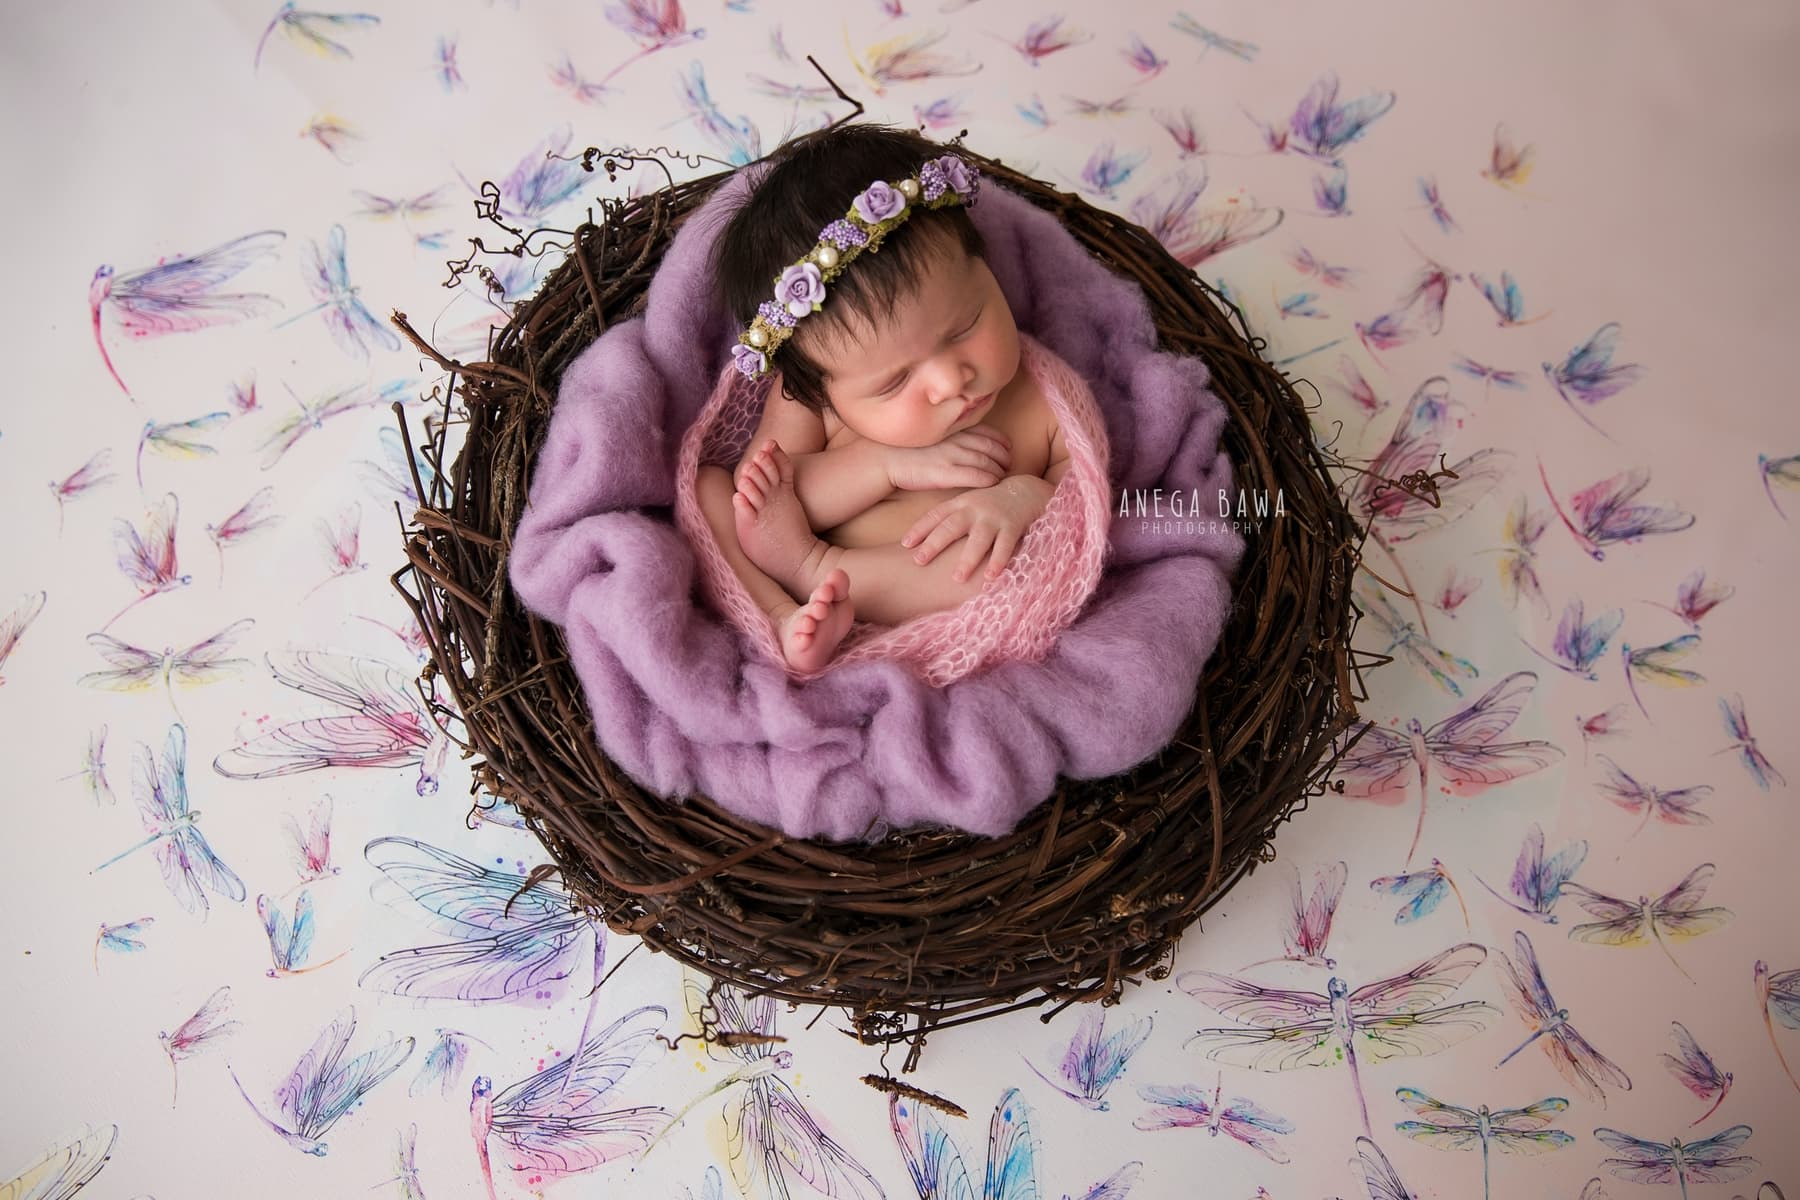 colorful dragonfly newborn photography delhi 10 days baby girl photoshoot gurgaon anega bawa